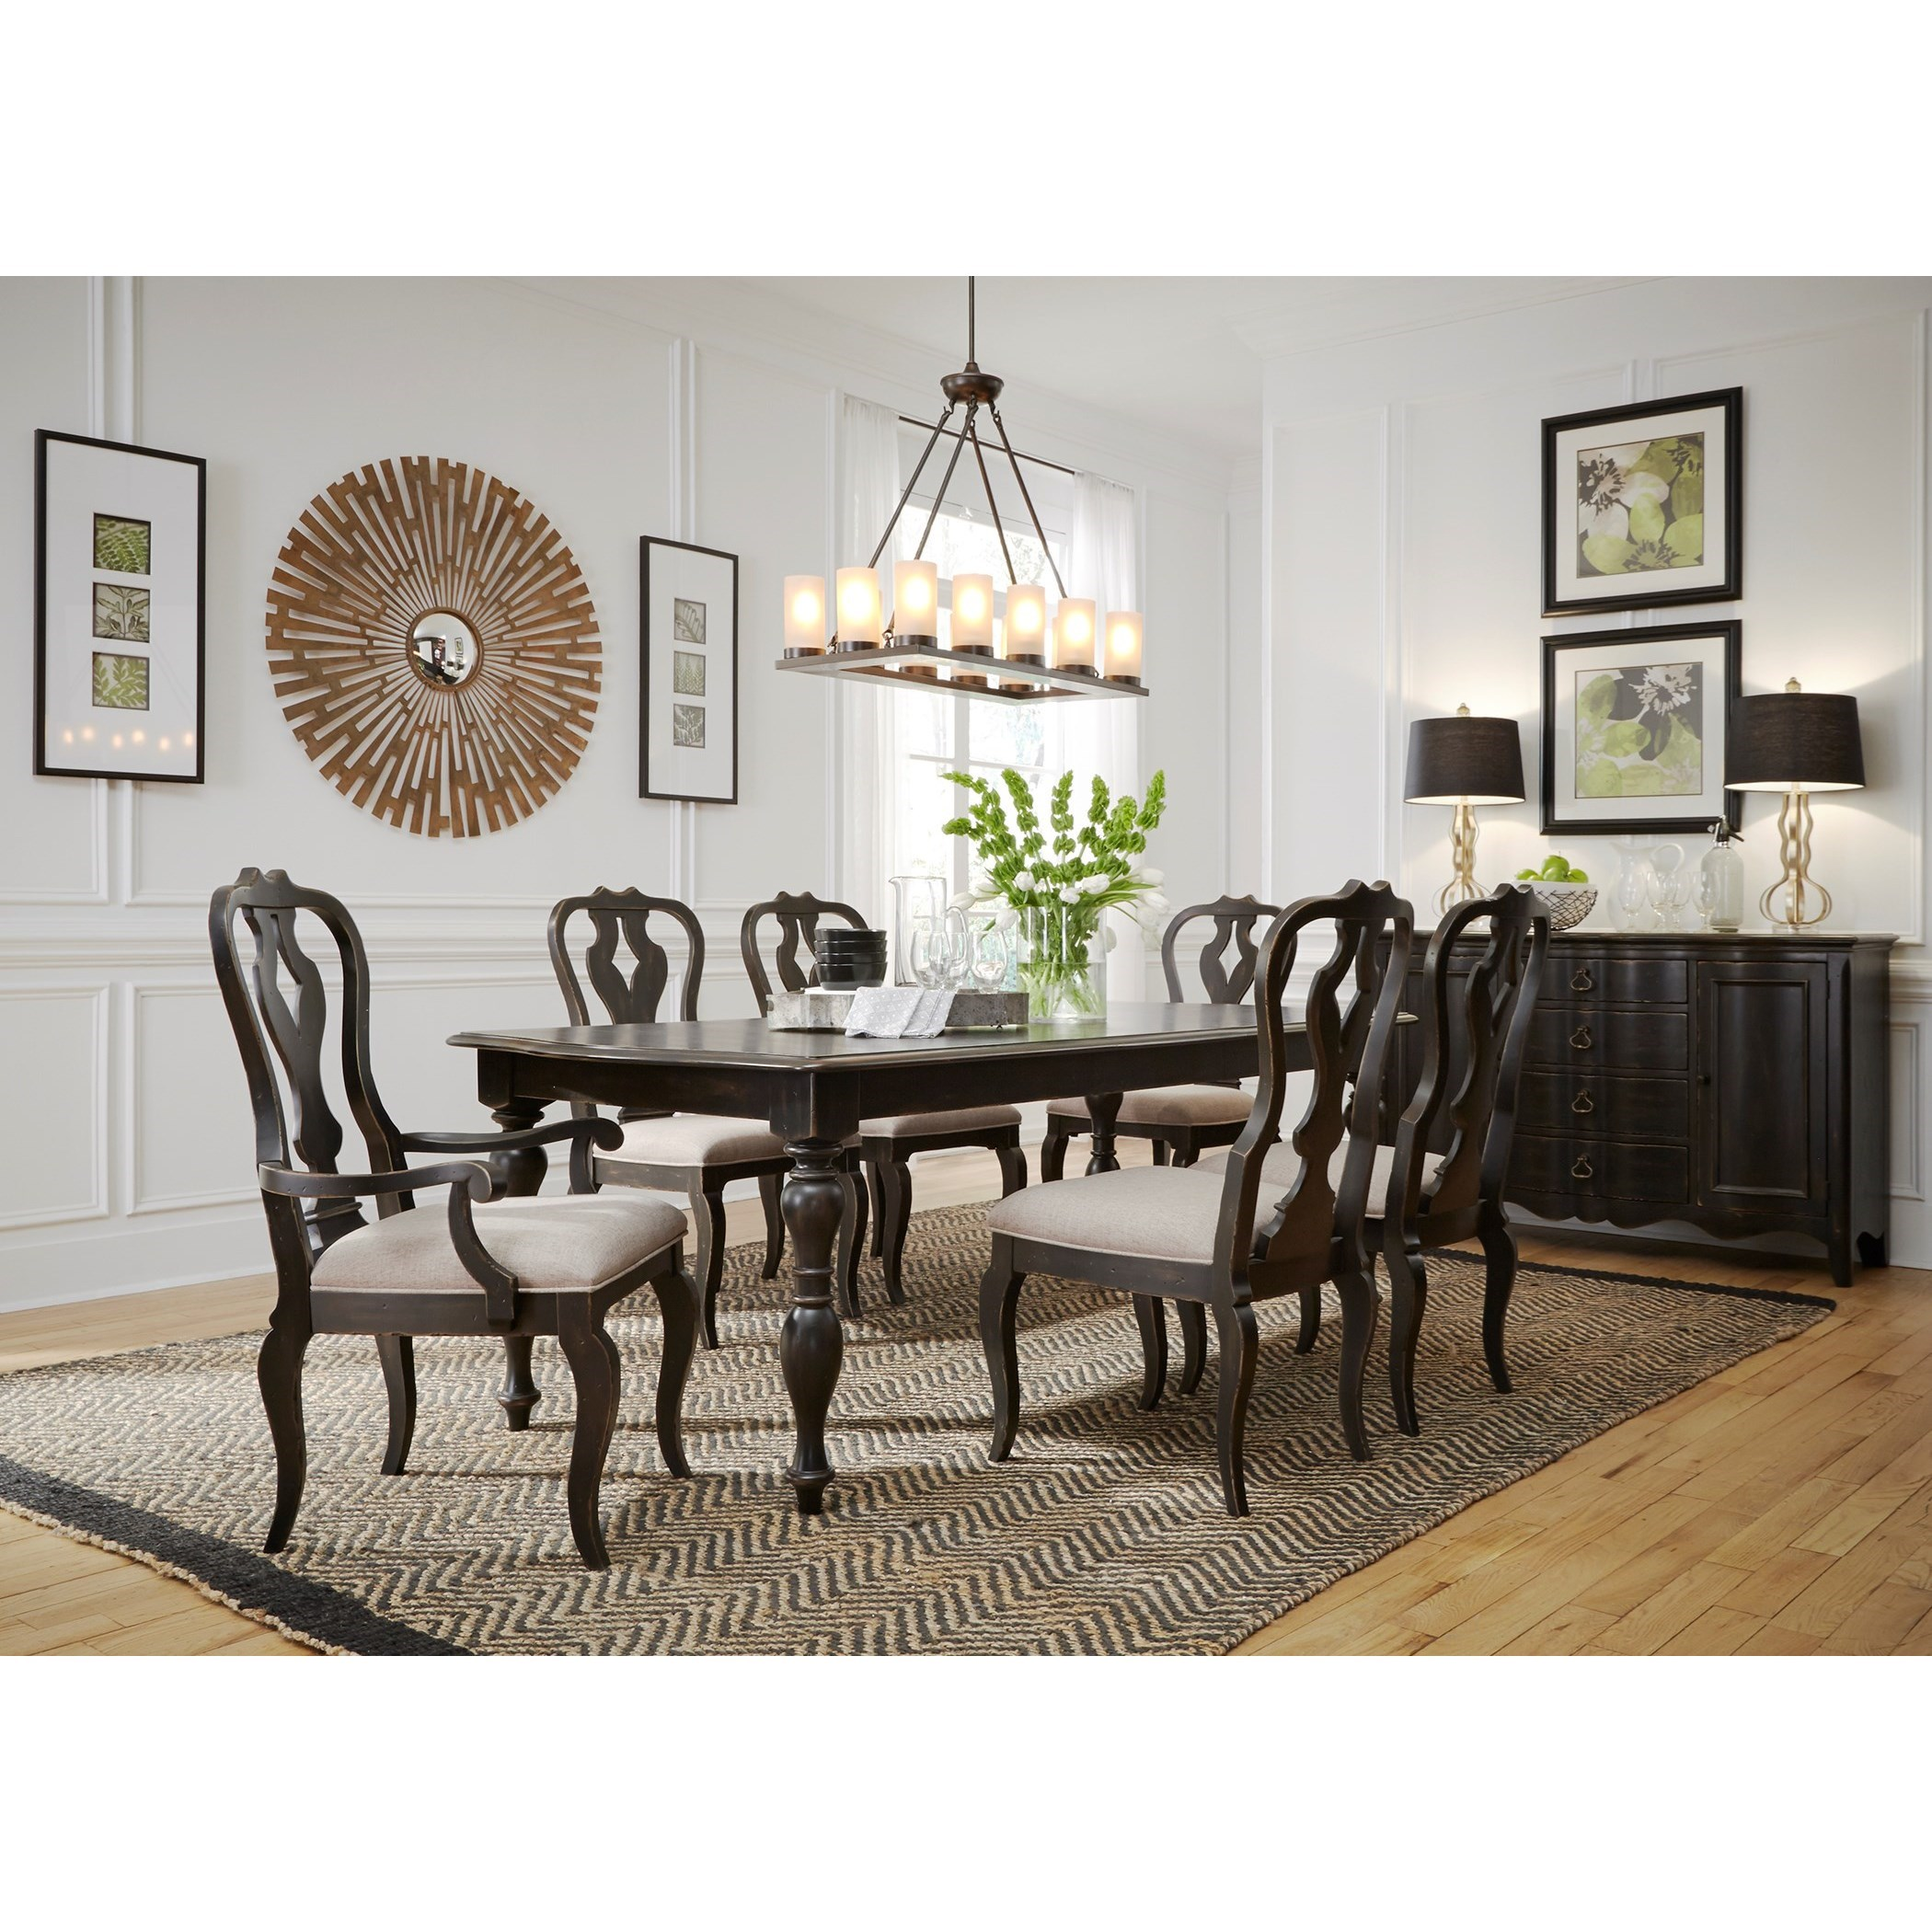 Liberty Furniture Chesapeake Table and Chair Set - Item Number: 493-DR-7RLS